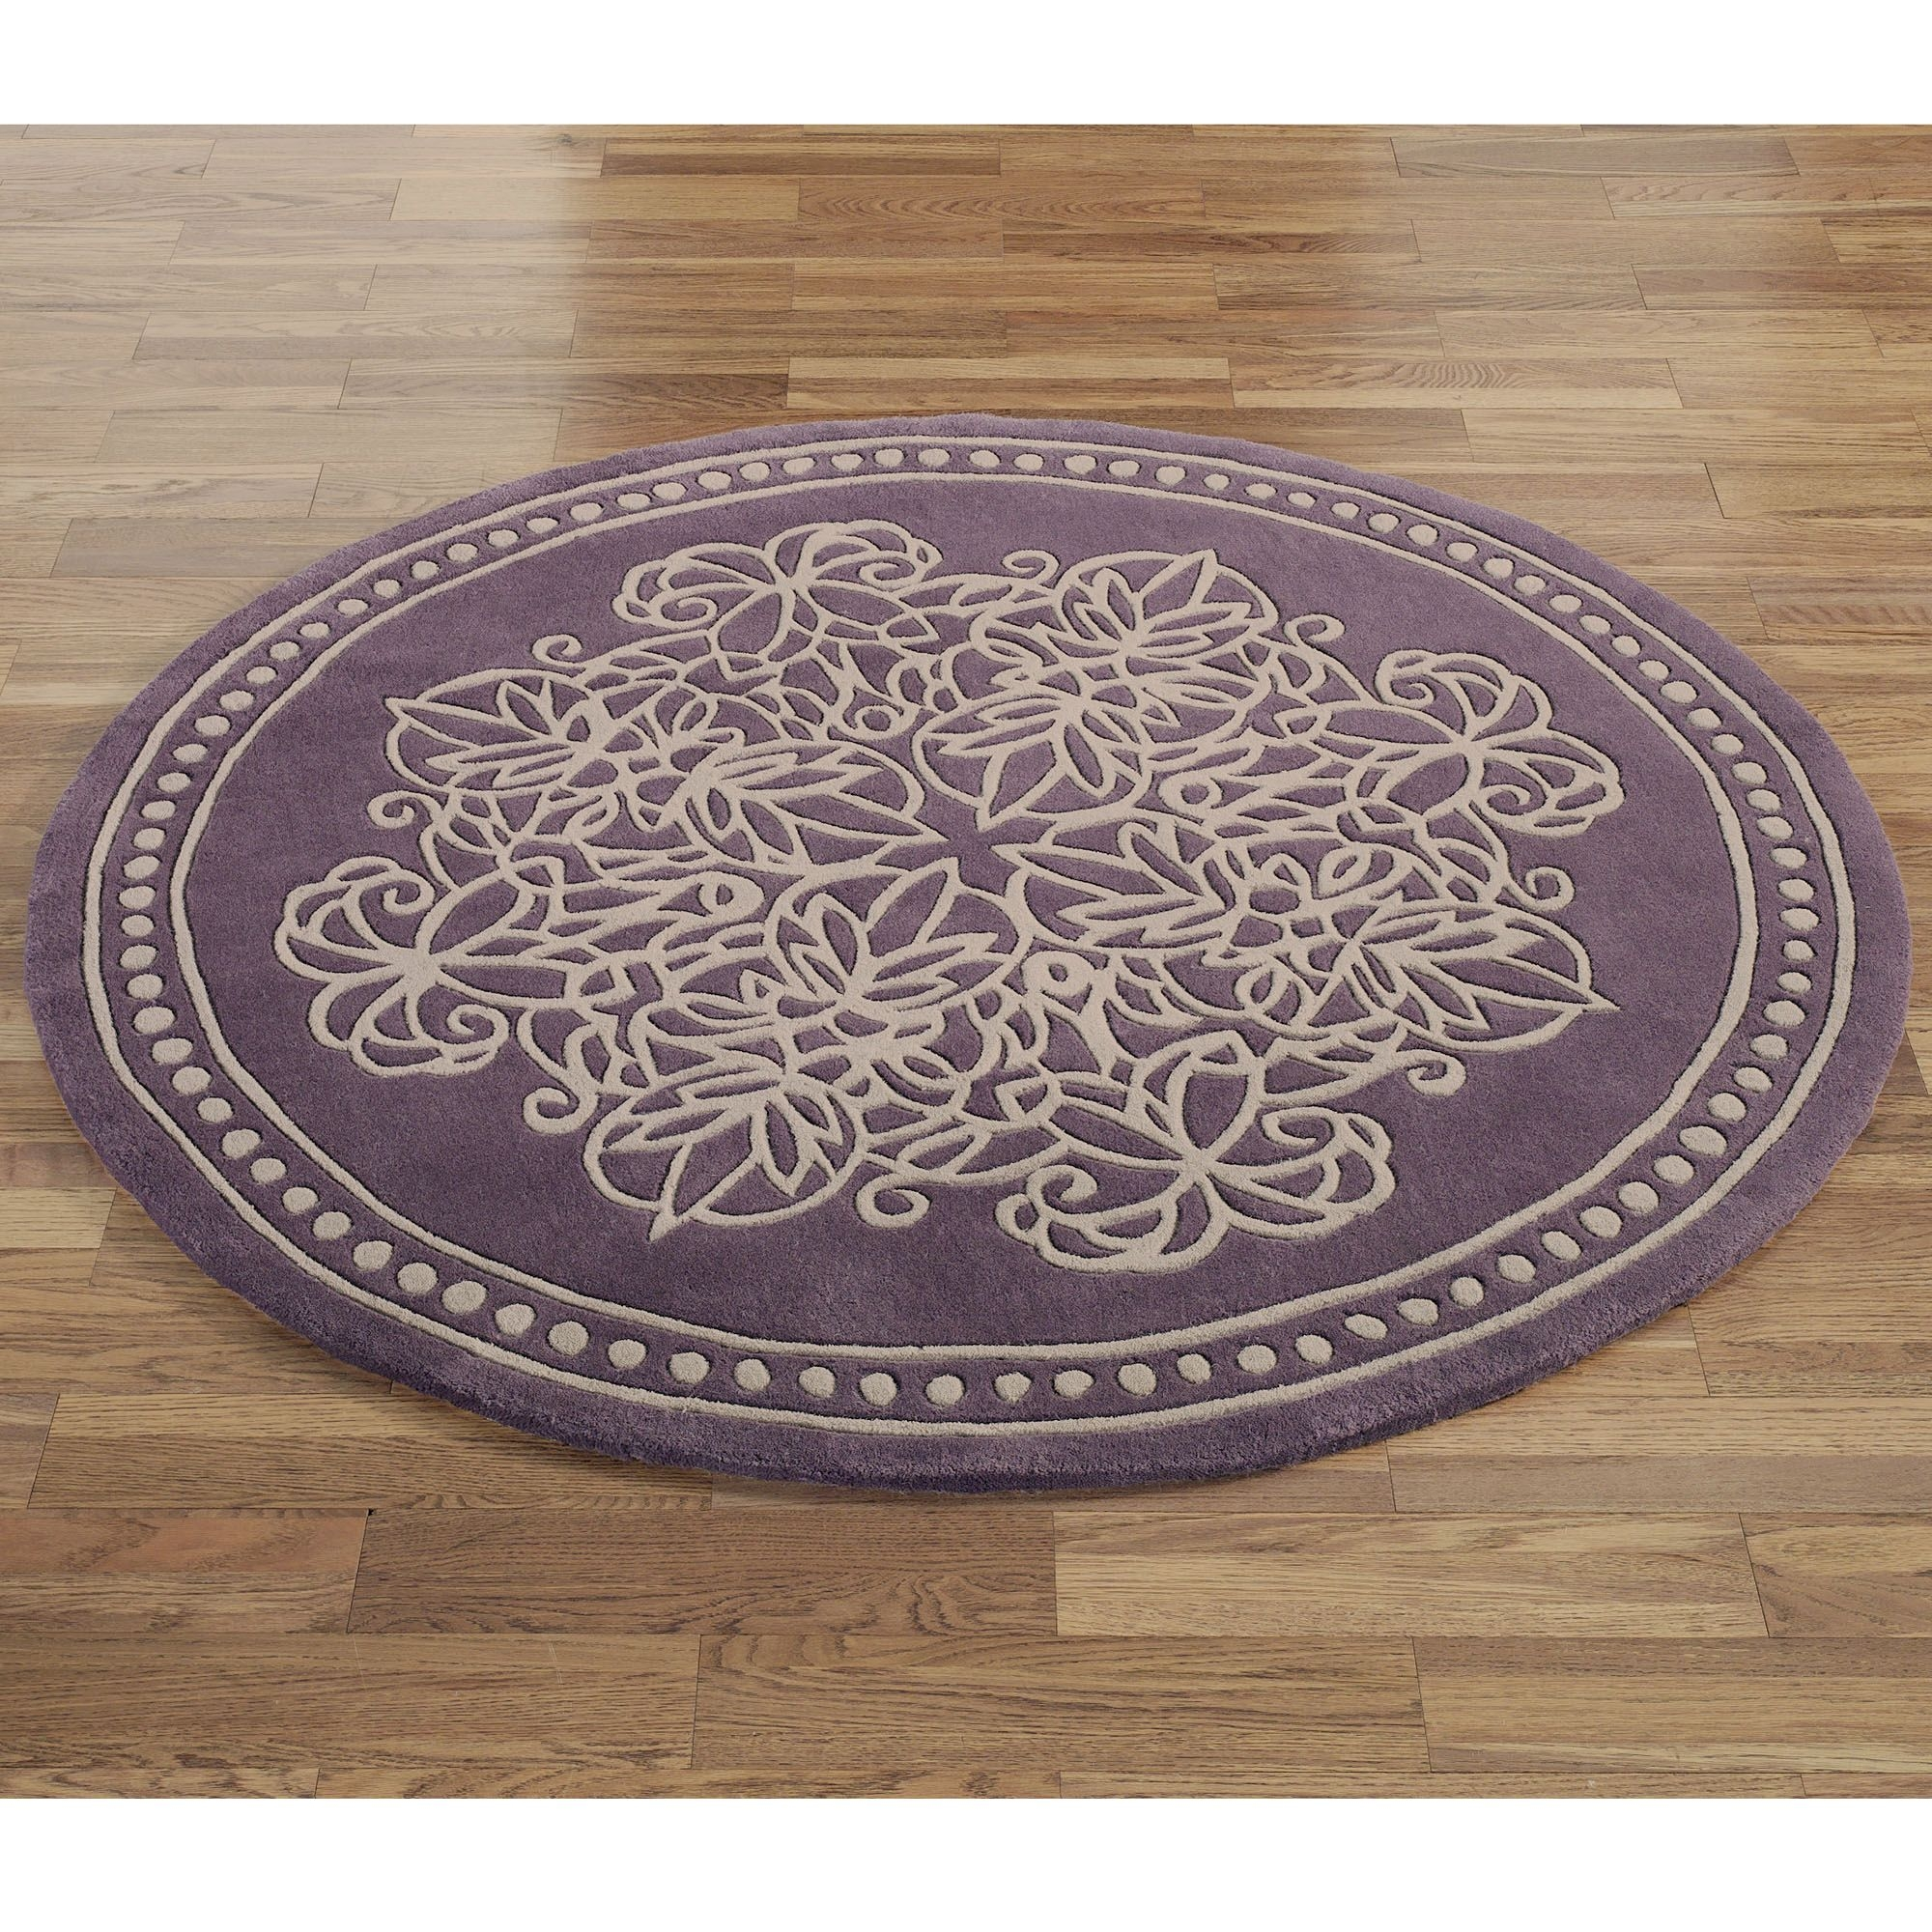 Vintage Lace Round Rugs Within Round Mats Rugs (Image 15 of 15)